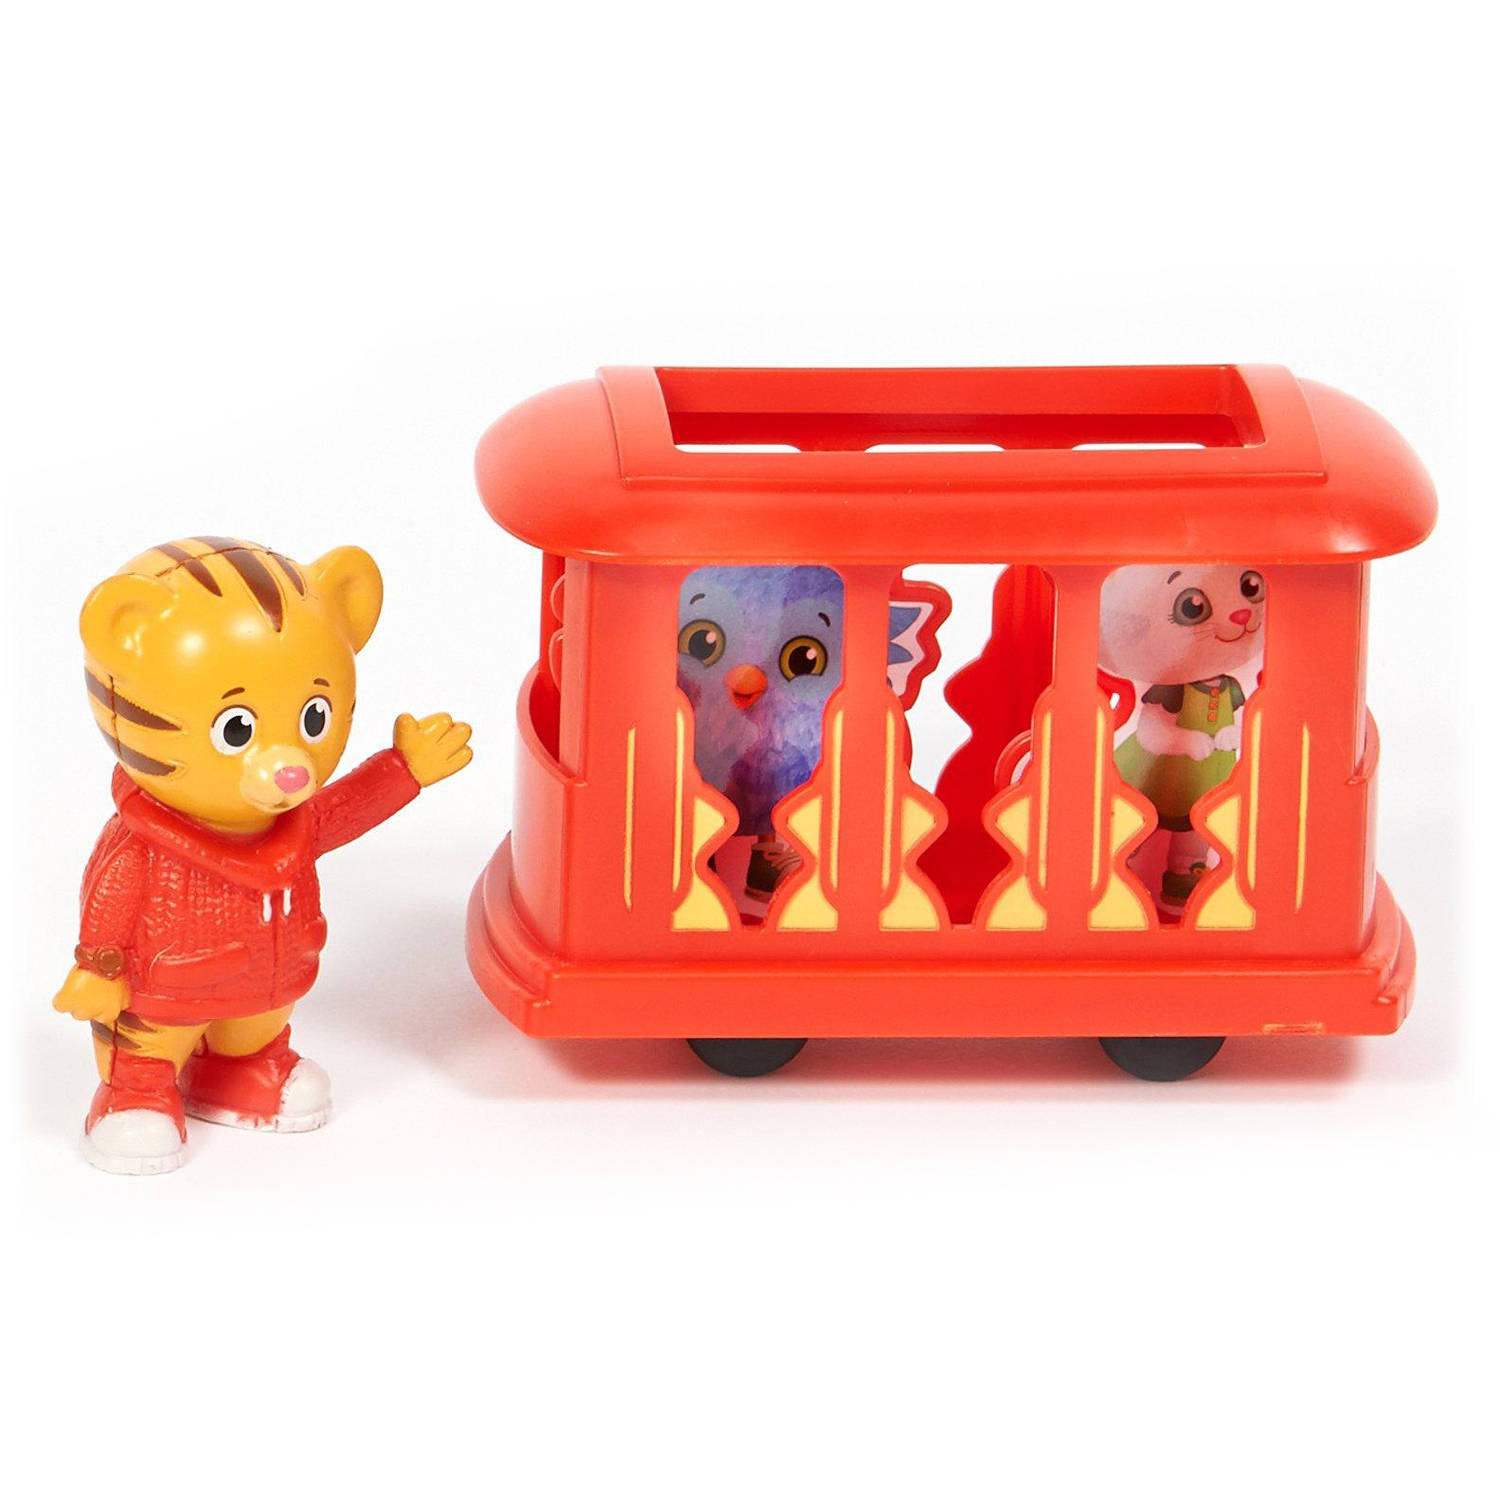 Daniel Tiger's Neighborhood Cake Topper, 4 Pieces